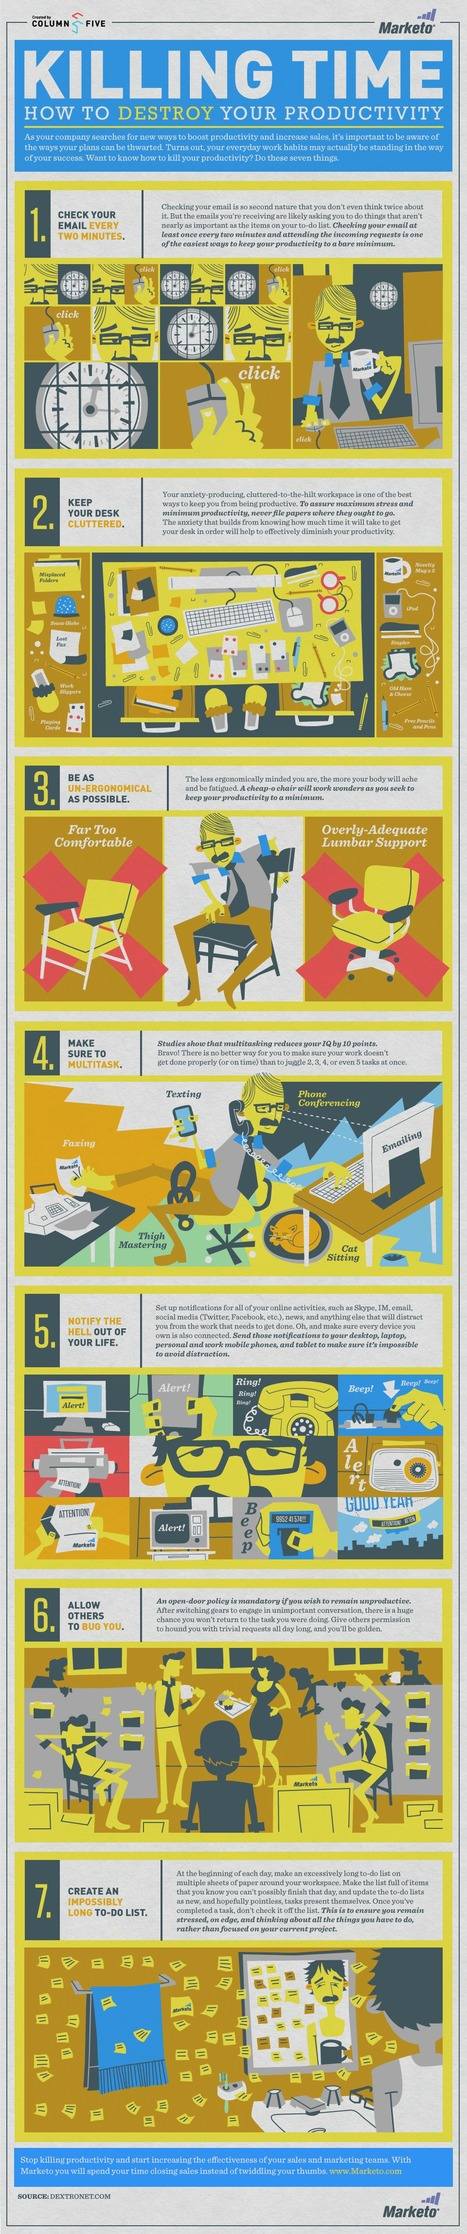 Killing Time: How to Destroy Your Productivity [Infographic] | Personal  Marketing Strategy | Scoop.it